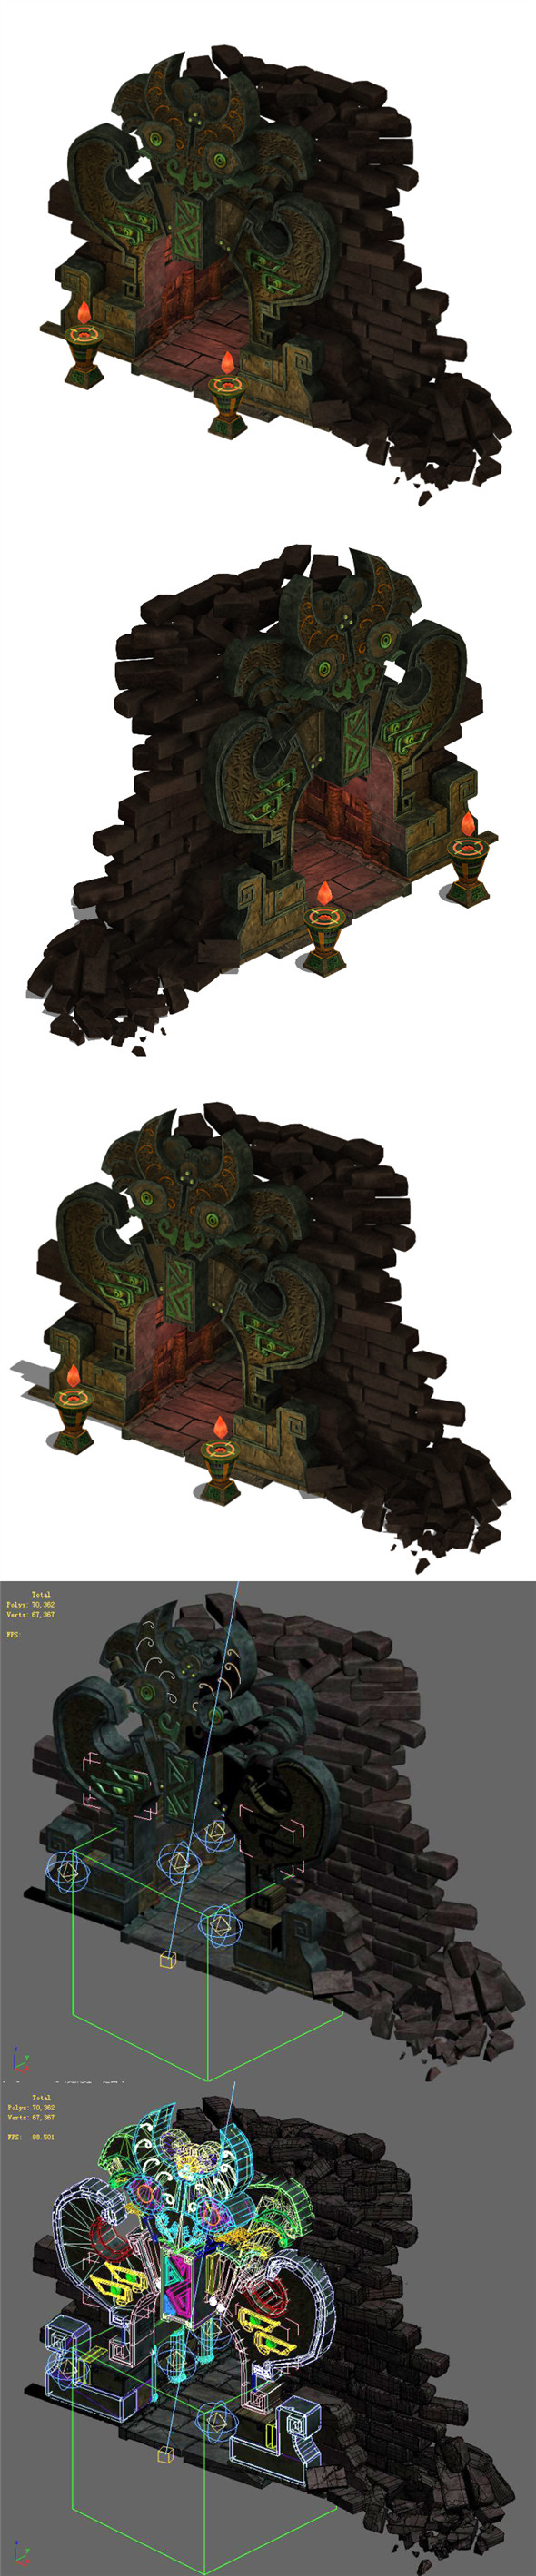 Ancient ruins - mountain entrance 01 - 3DOcean Item for Sale